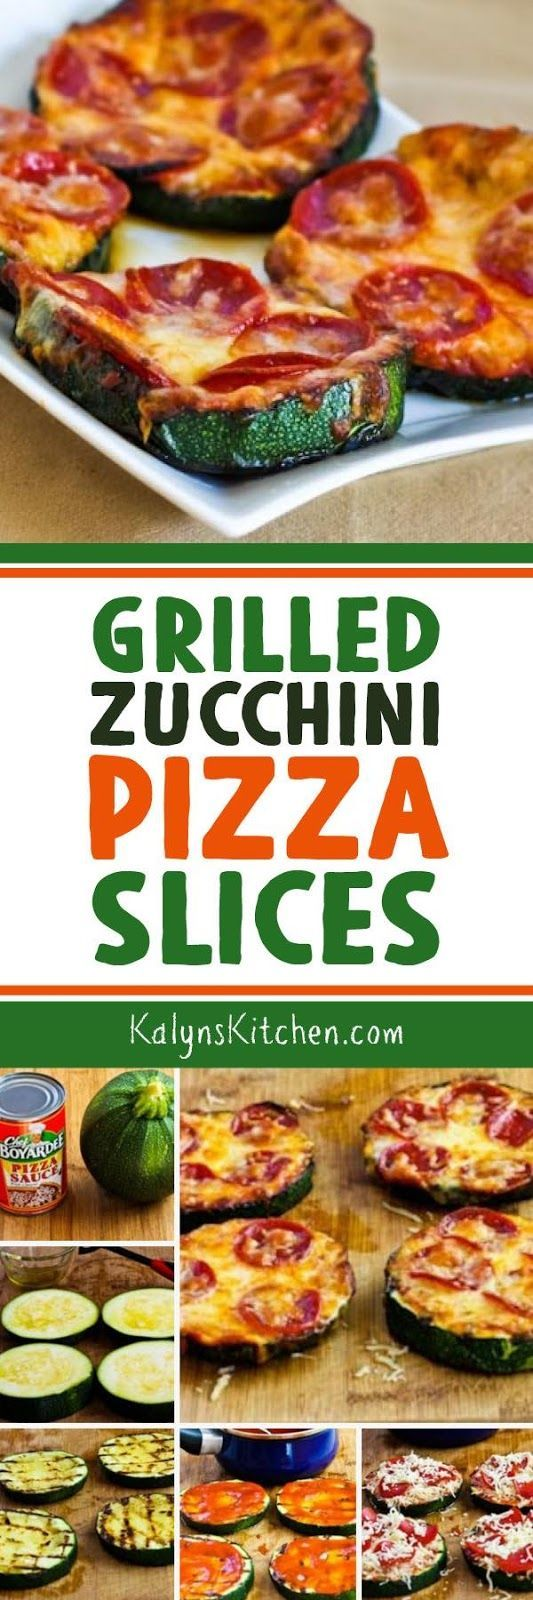 Grilled Zucchini Pizza Slices   Recipe   RECIPES Healthy Meals, Snacks & Tips   Pinterest   Low ...